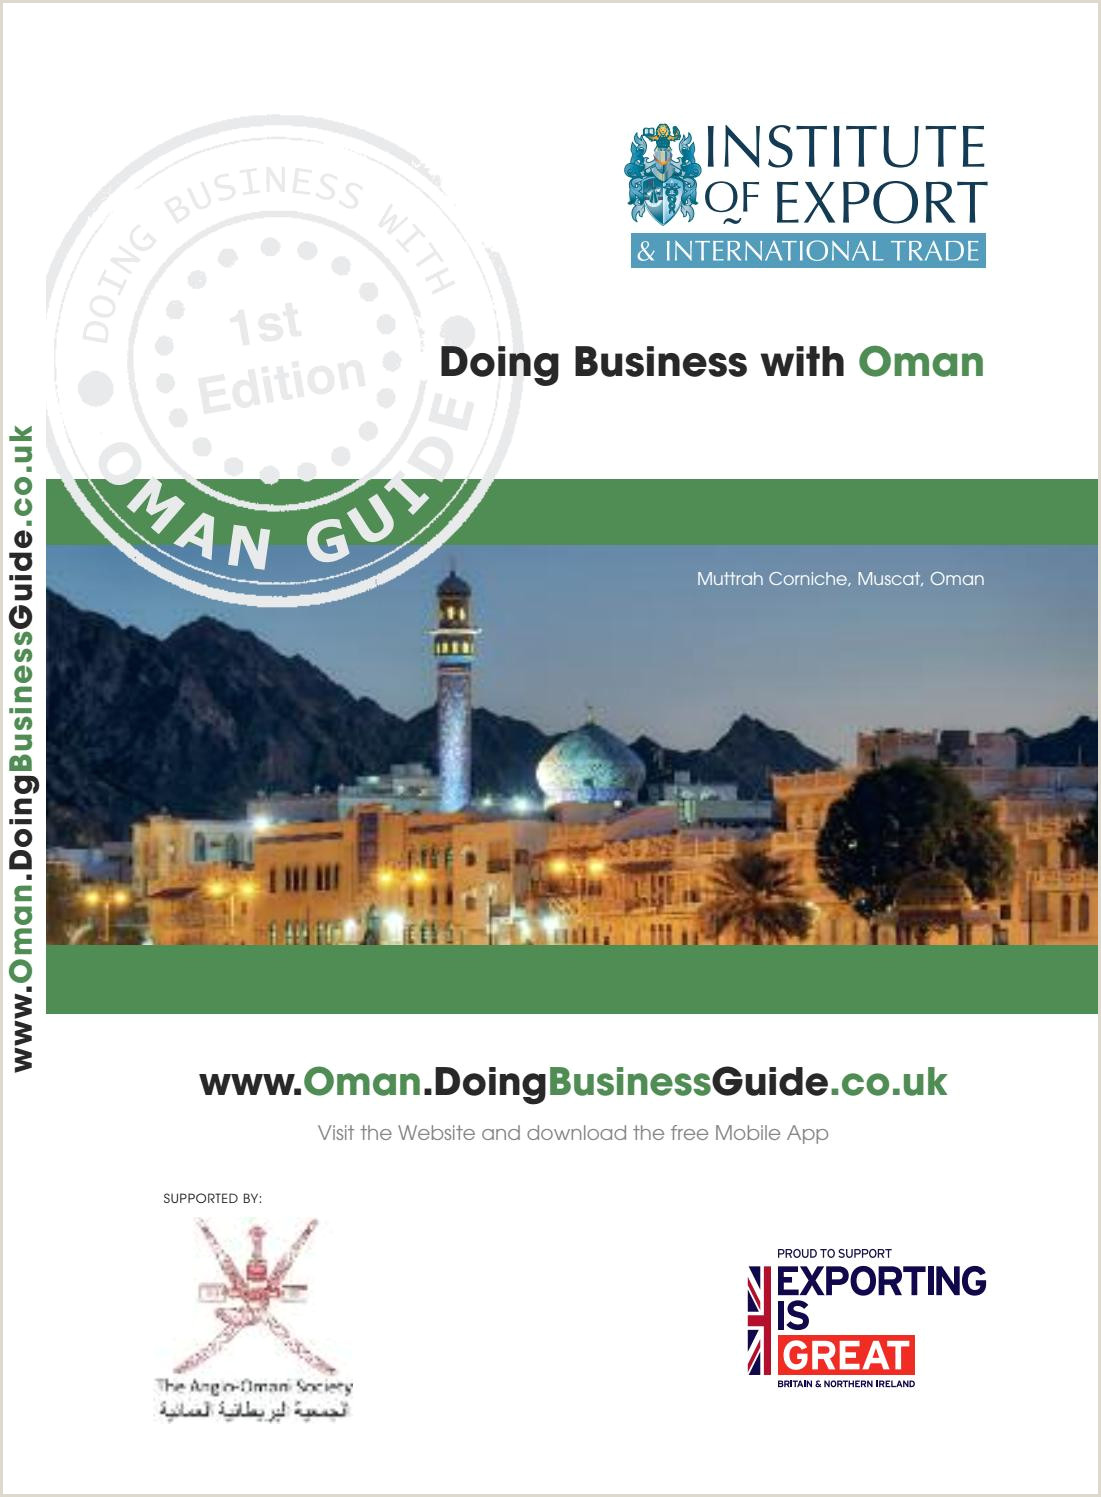 Where To Leave Business Cards Doing Business With Oman Guide By Doing Business Guides Issuu